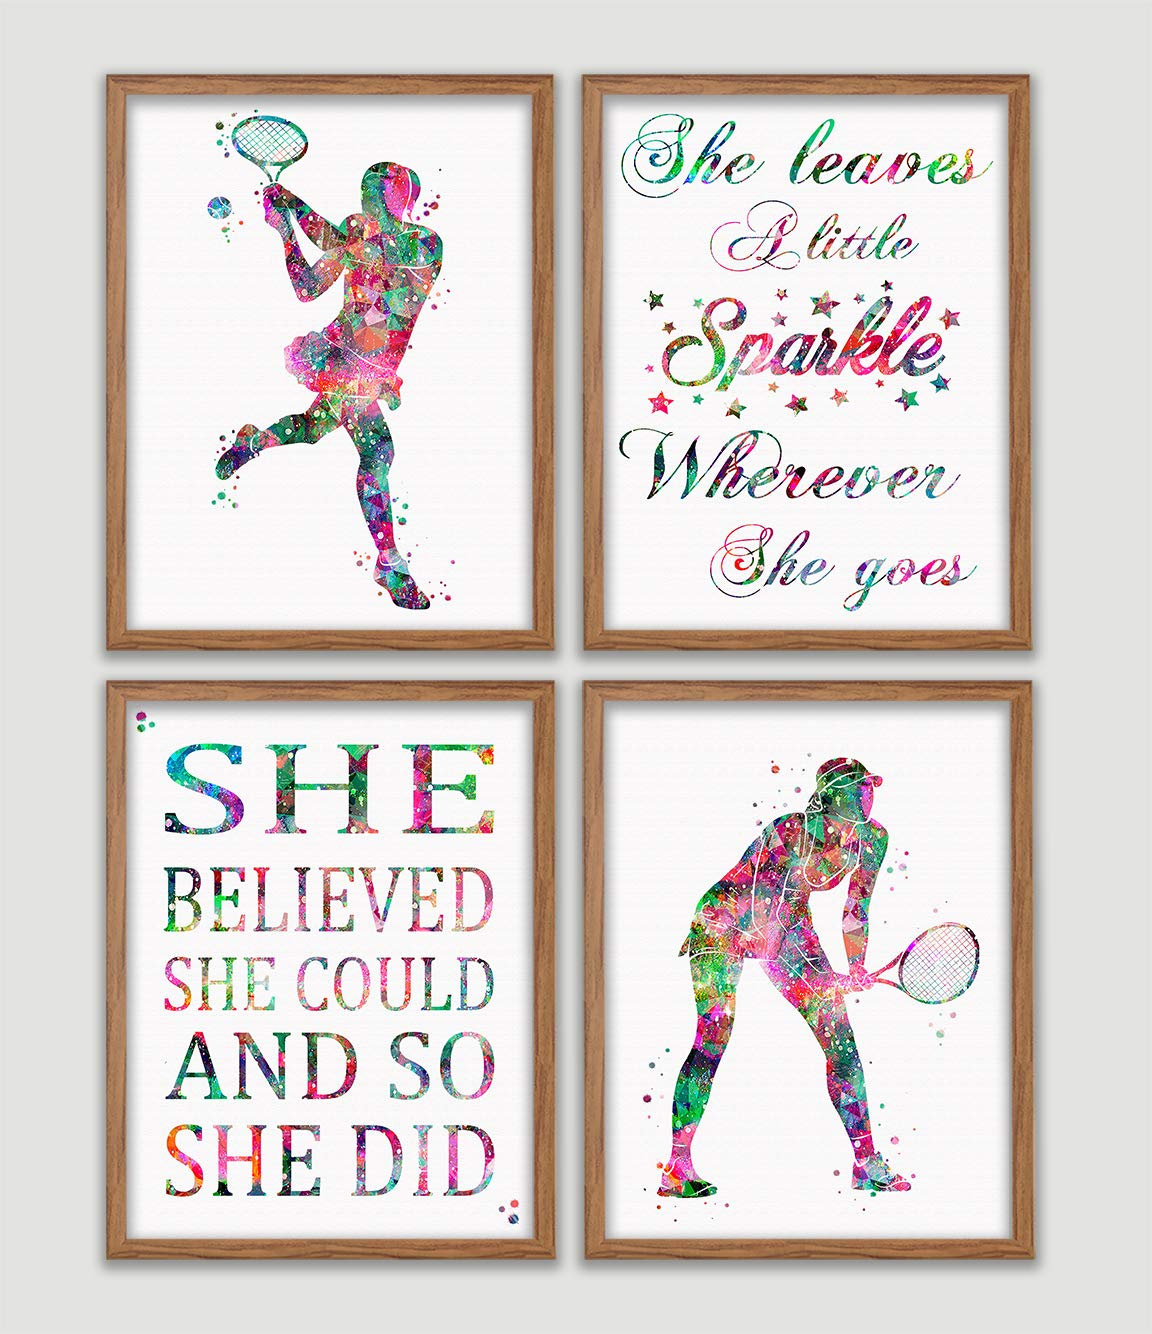 Tennis Player Girl Watercolor Poster Set Girl Tennis Player Art Prints Girl's Room Wall Decor Teen Girl's Wall Art Girl Sports Home Decor Wall Hanging Great Gift for Tennis Player